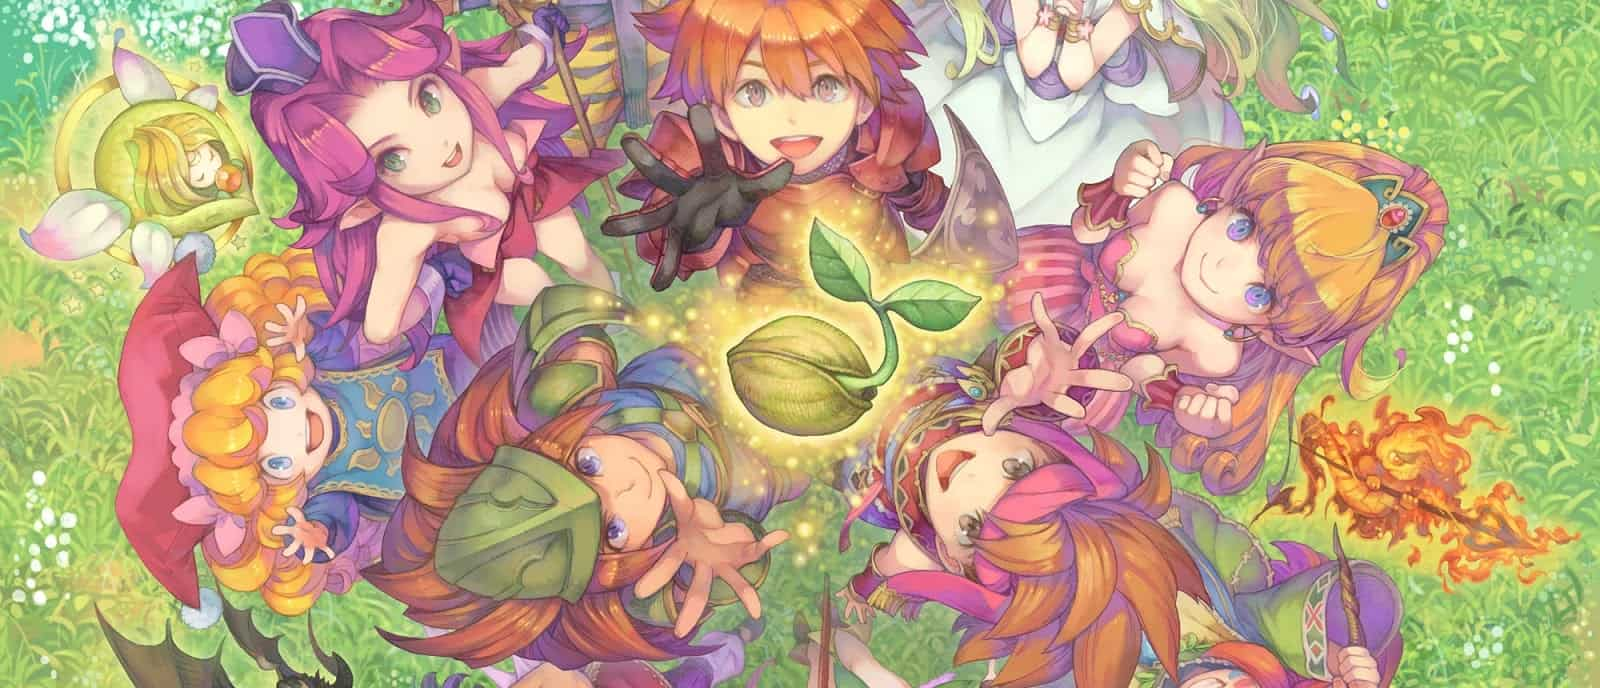 Seiken Densetsu Collection é anunciado para Switch